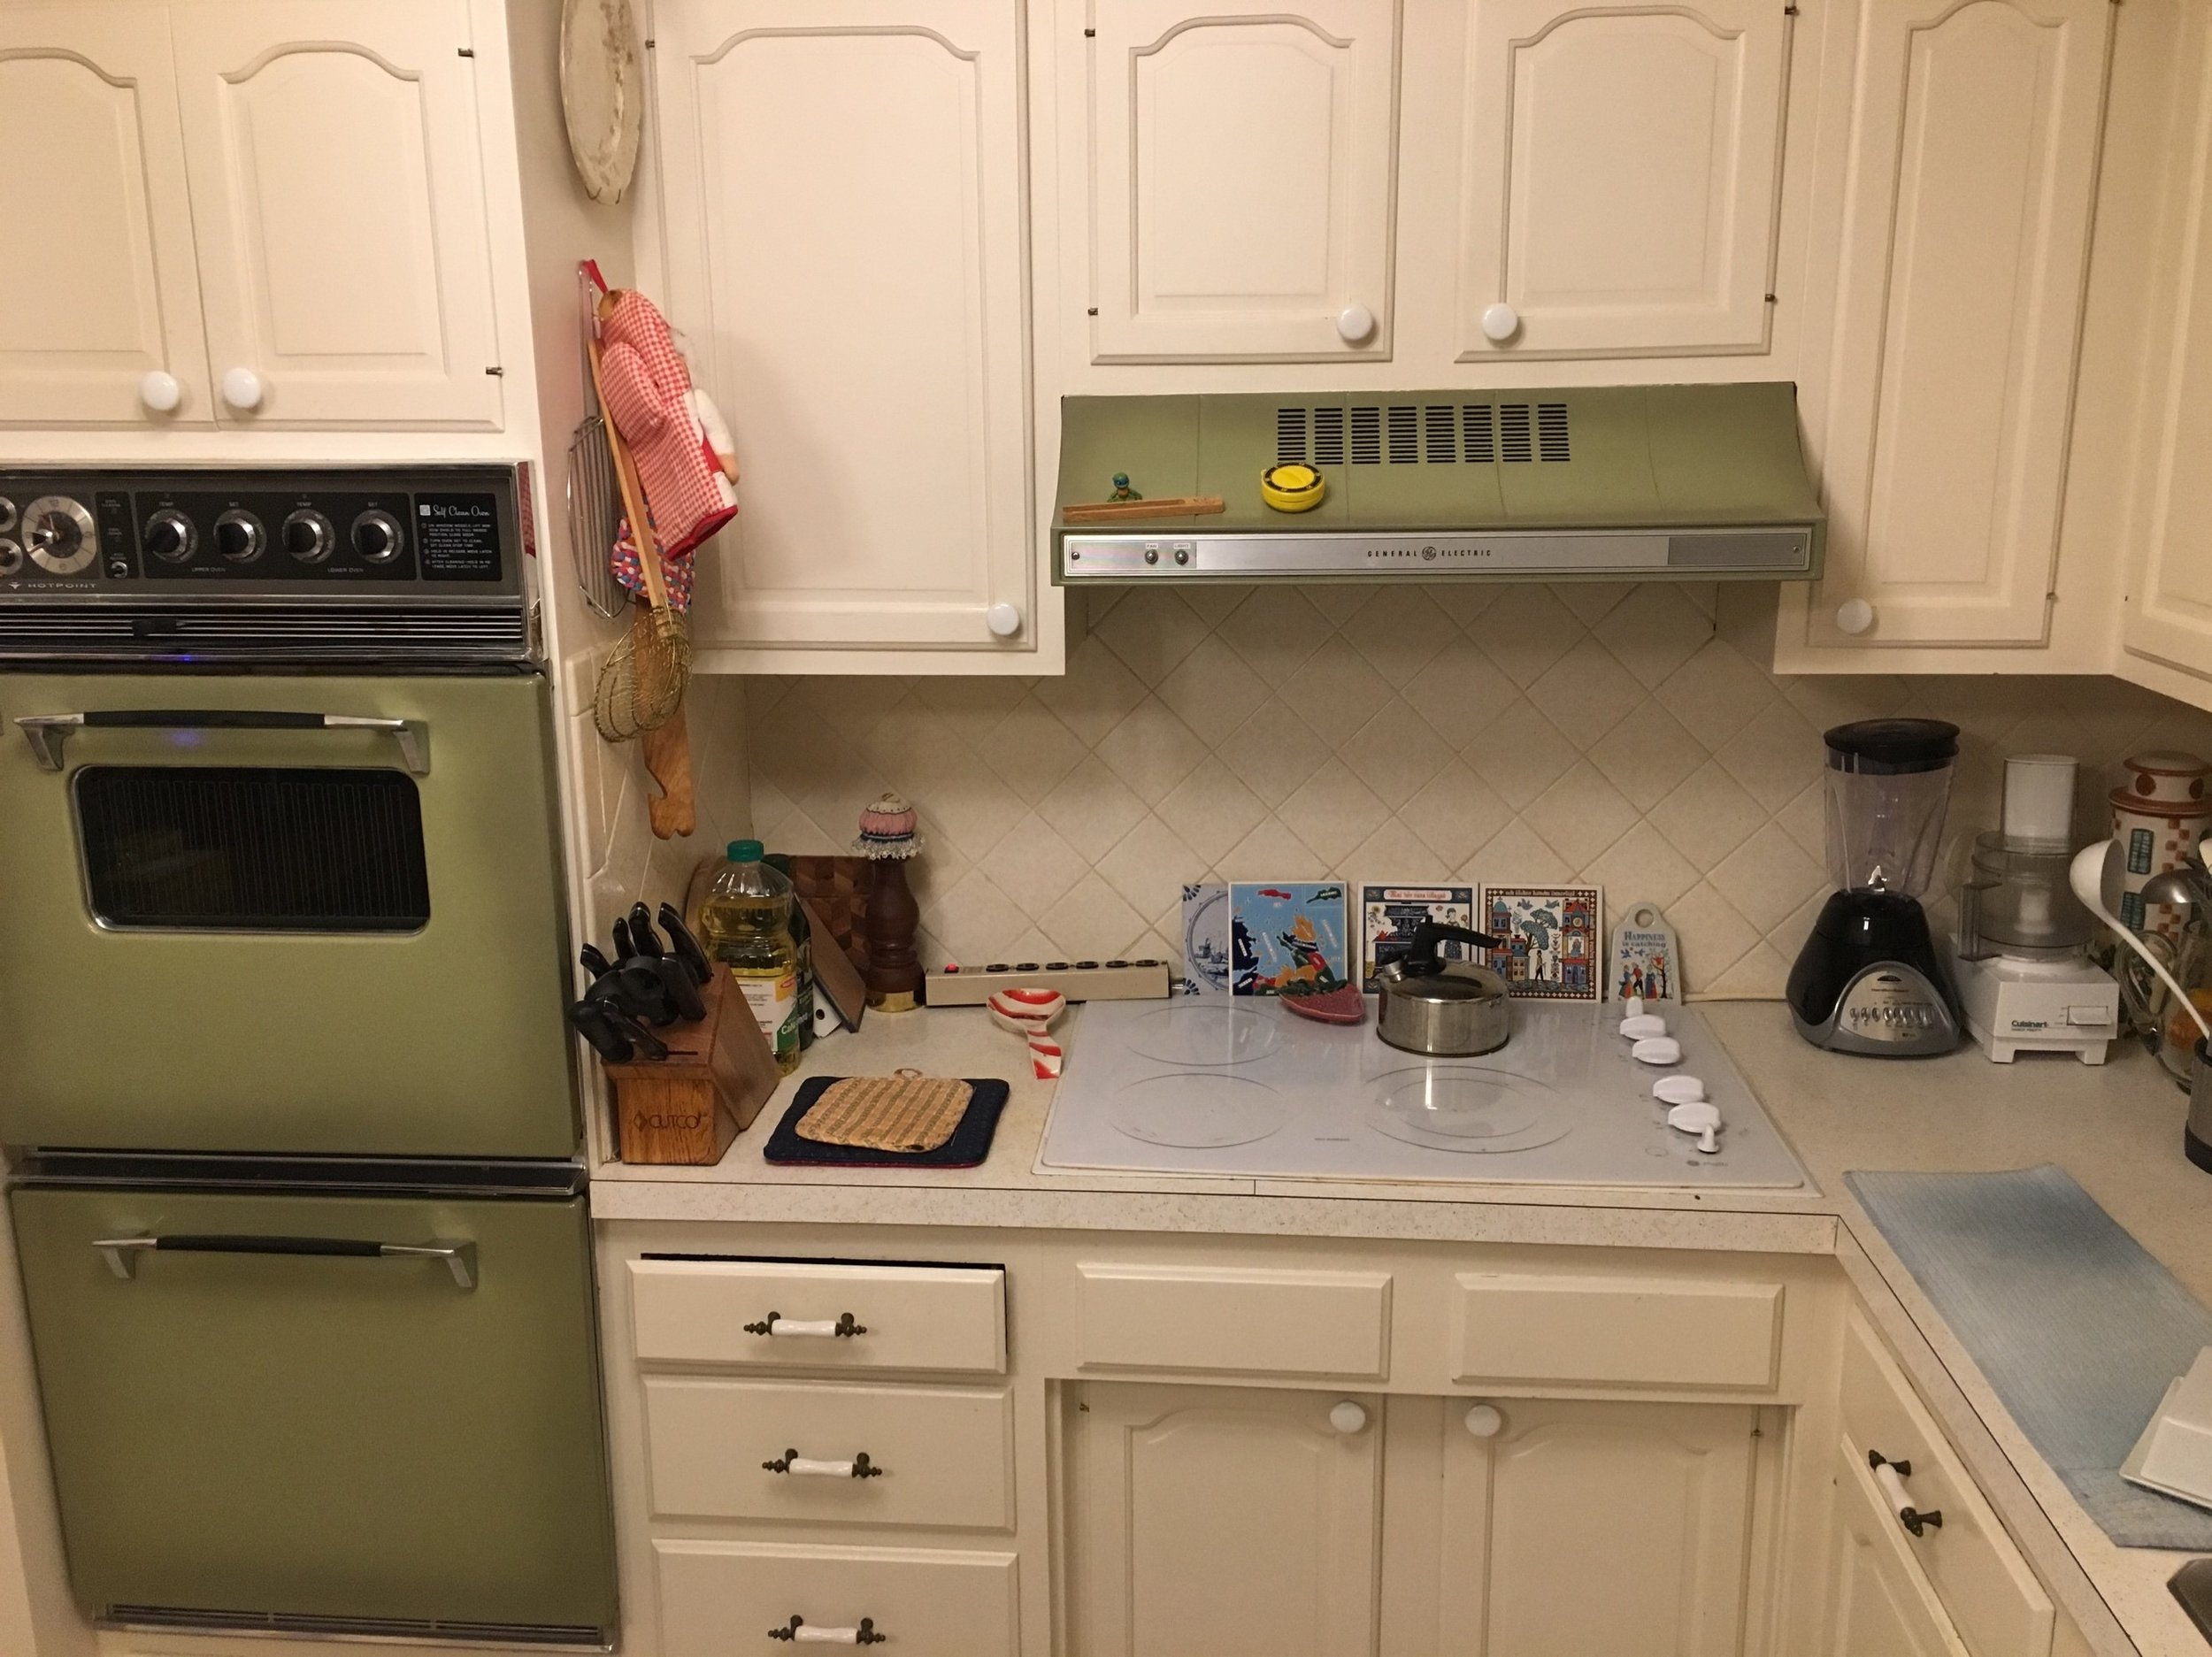 glass cooktop, old double oven.jpg